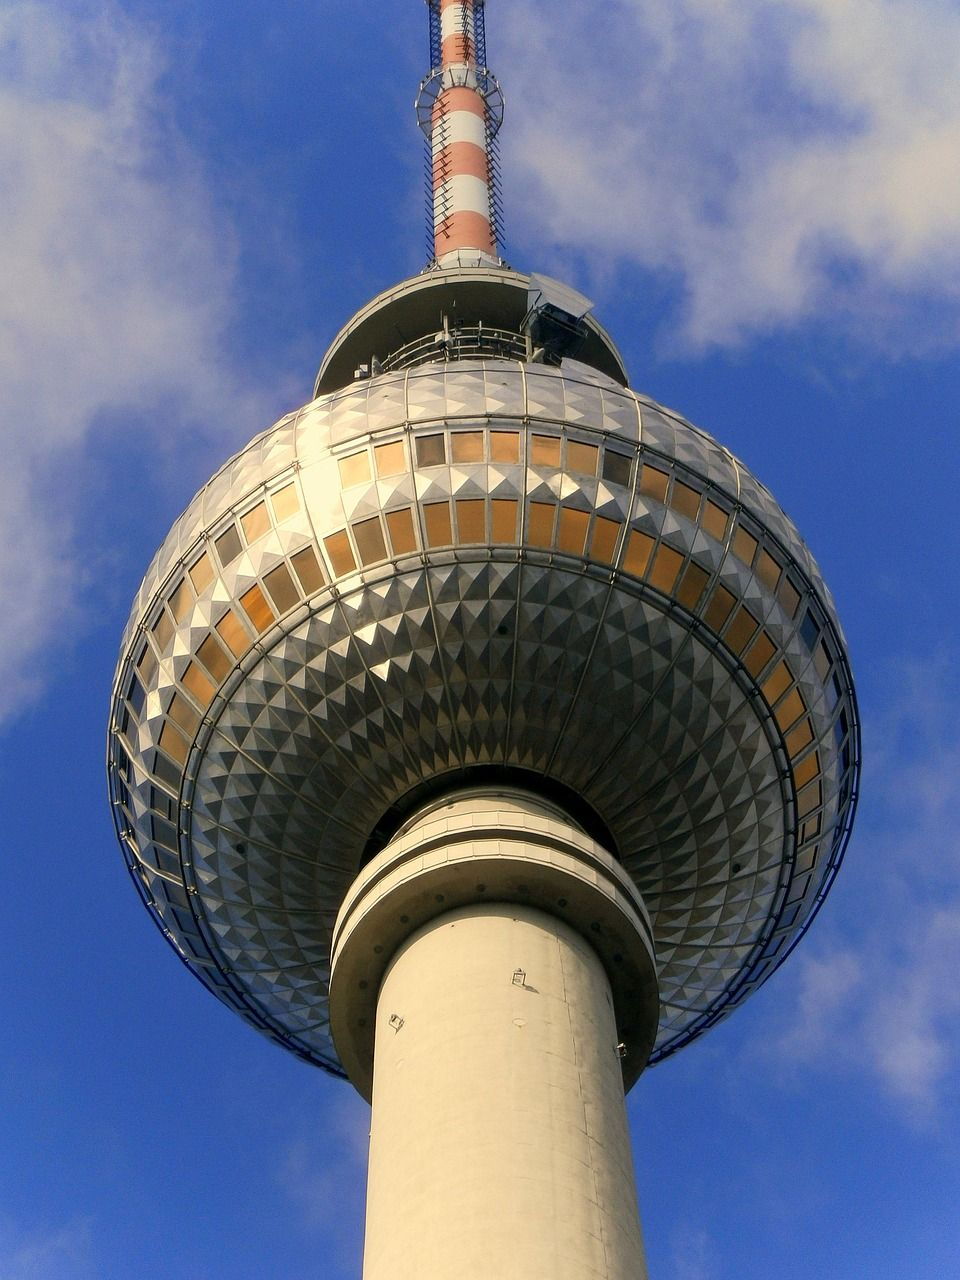 Germany Tower Tv Tower Berlin Alexanderplatz Germany Tower Tvtower Berlin Alexanderplatz Europe Continent Germany Travel Germany